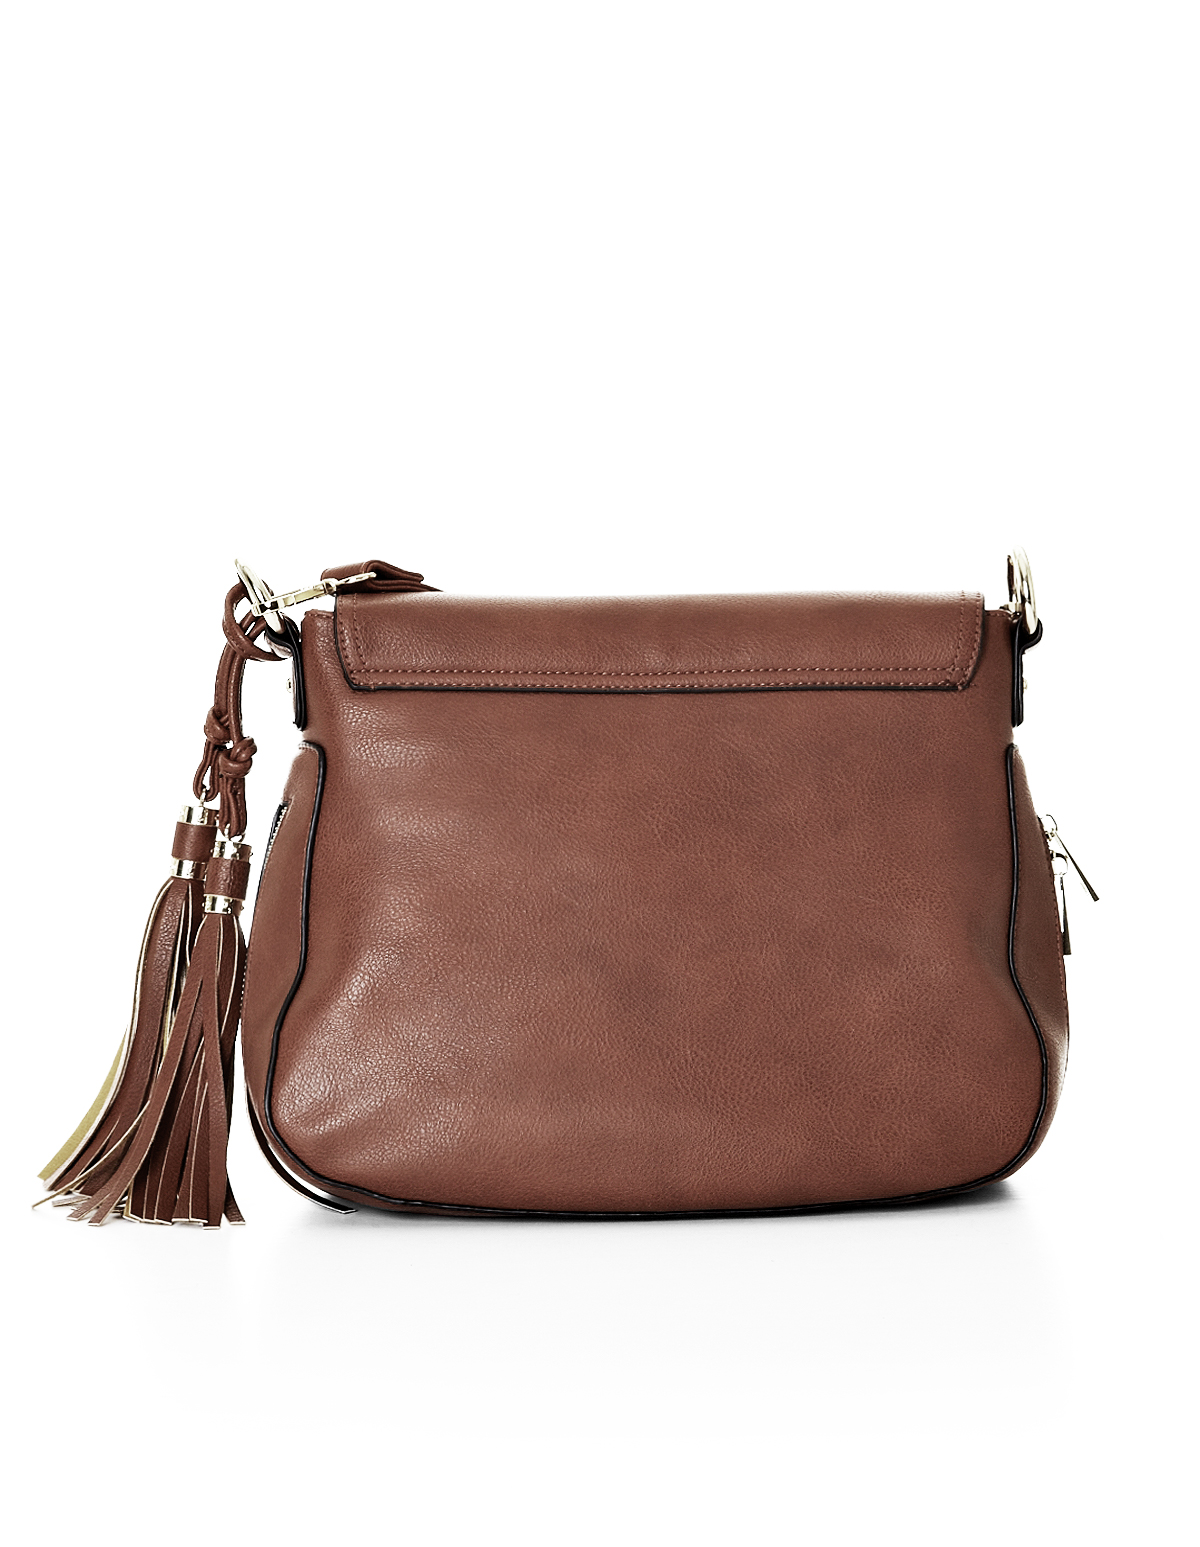 Find the most fashionable crossbody handbags & purses. Our crossbody bags at baggallini come in a wide selection of styles & colors for your lifestyle.